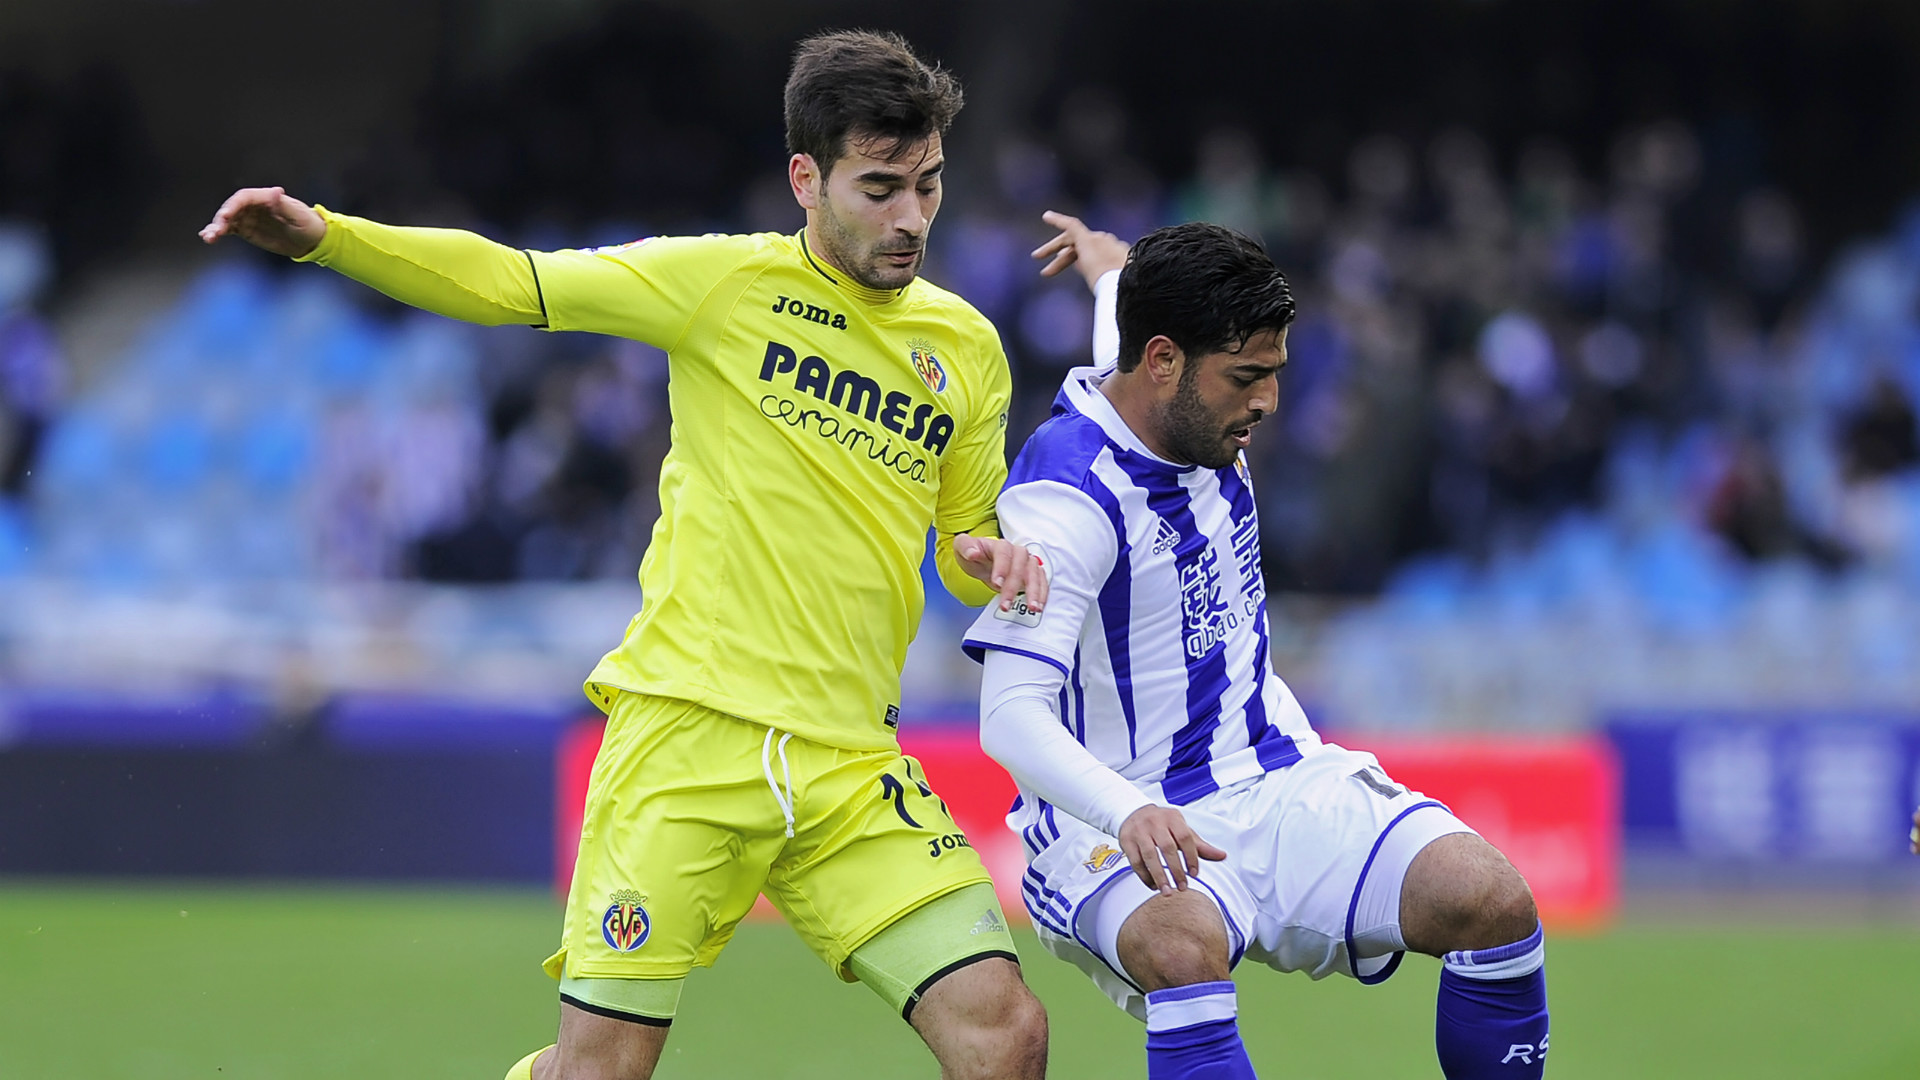 villarreal vs real sociedad live